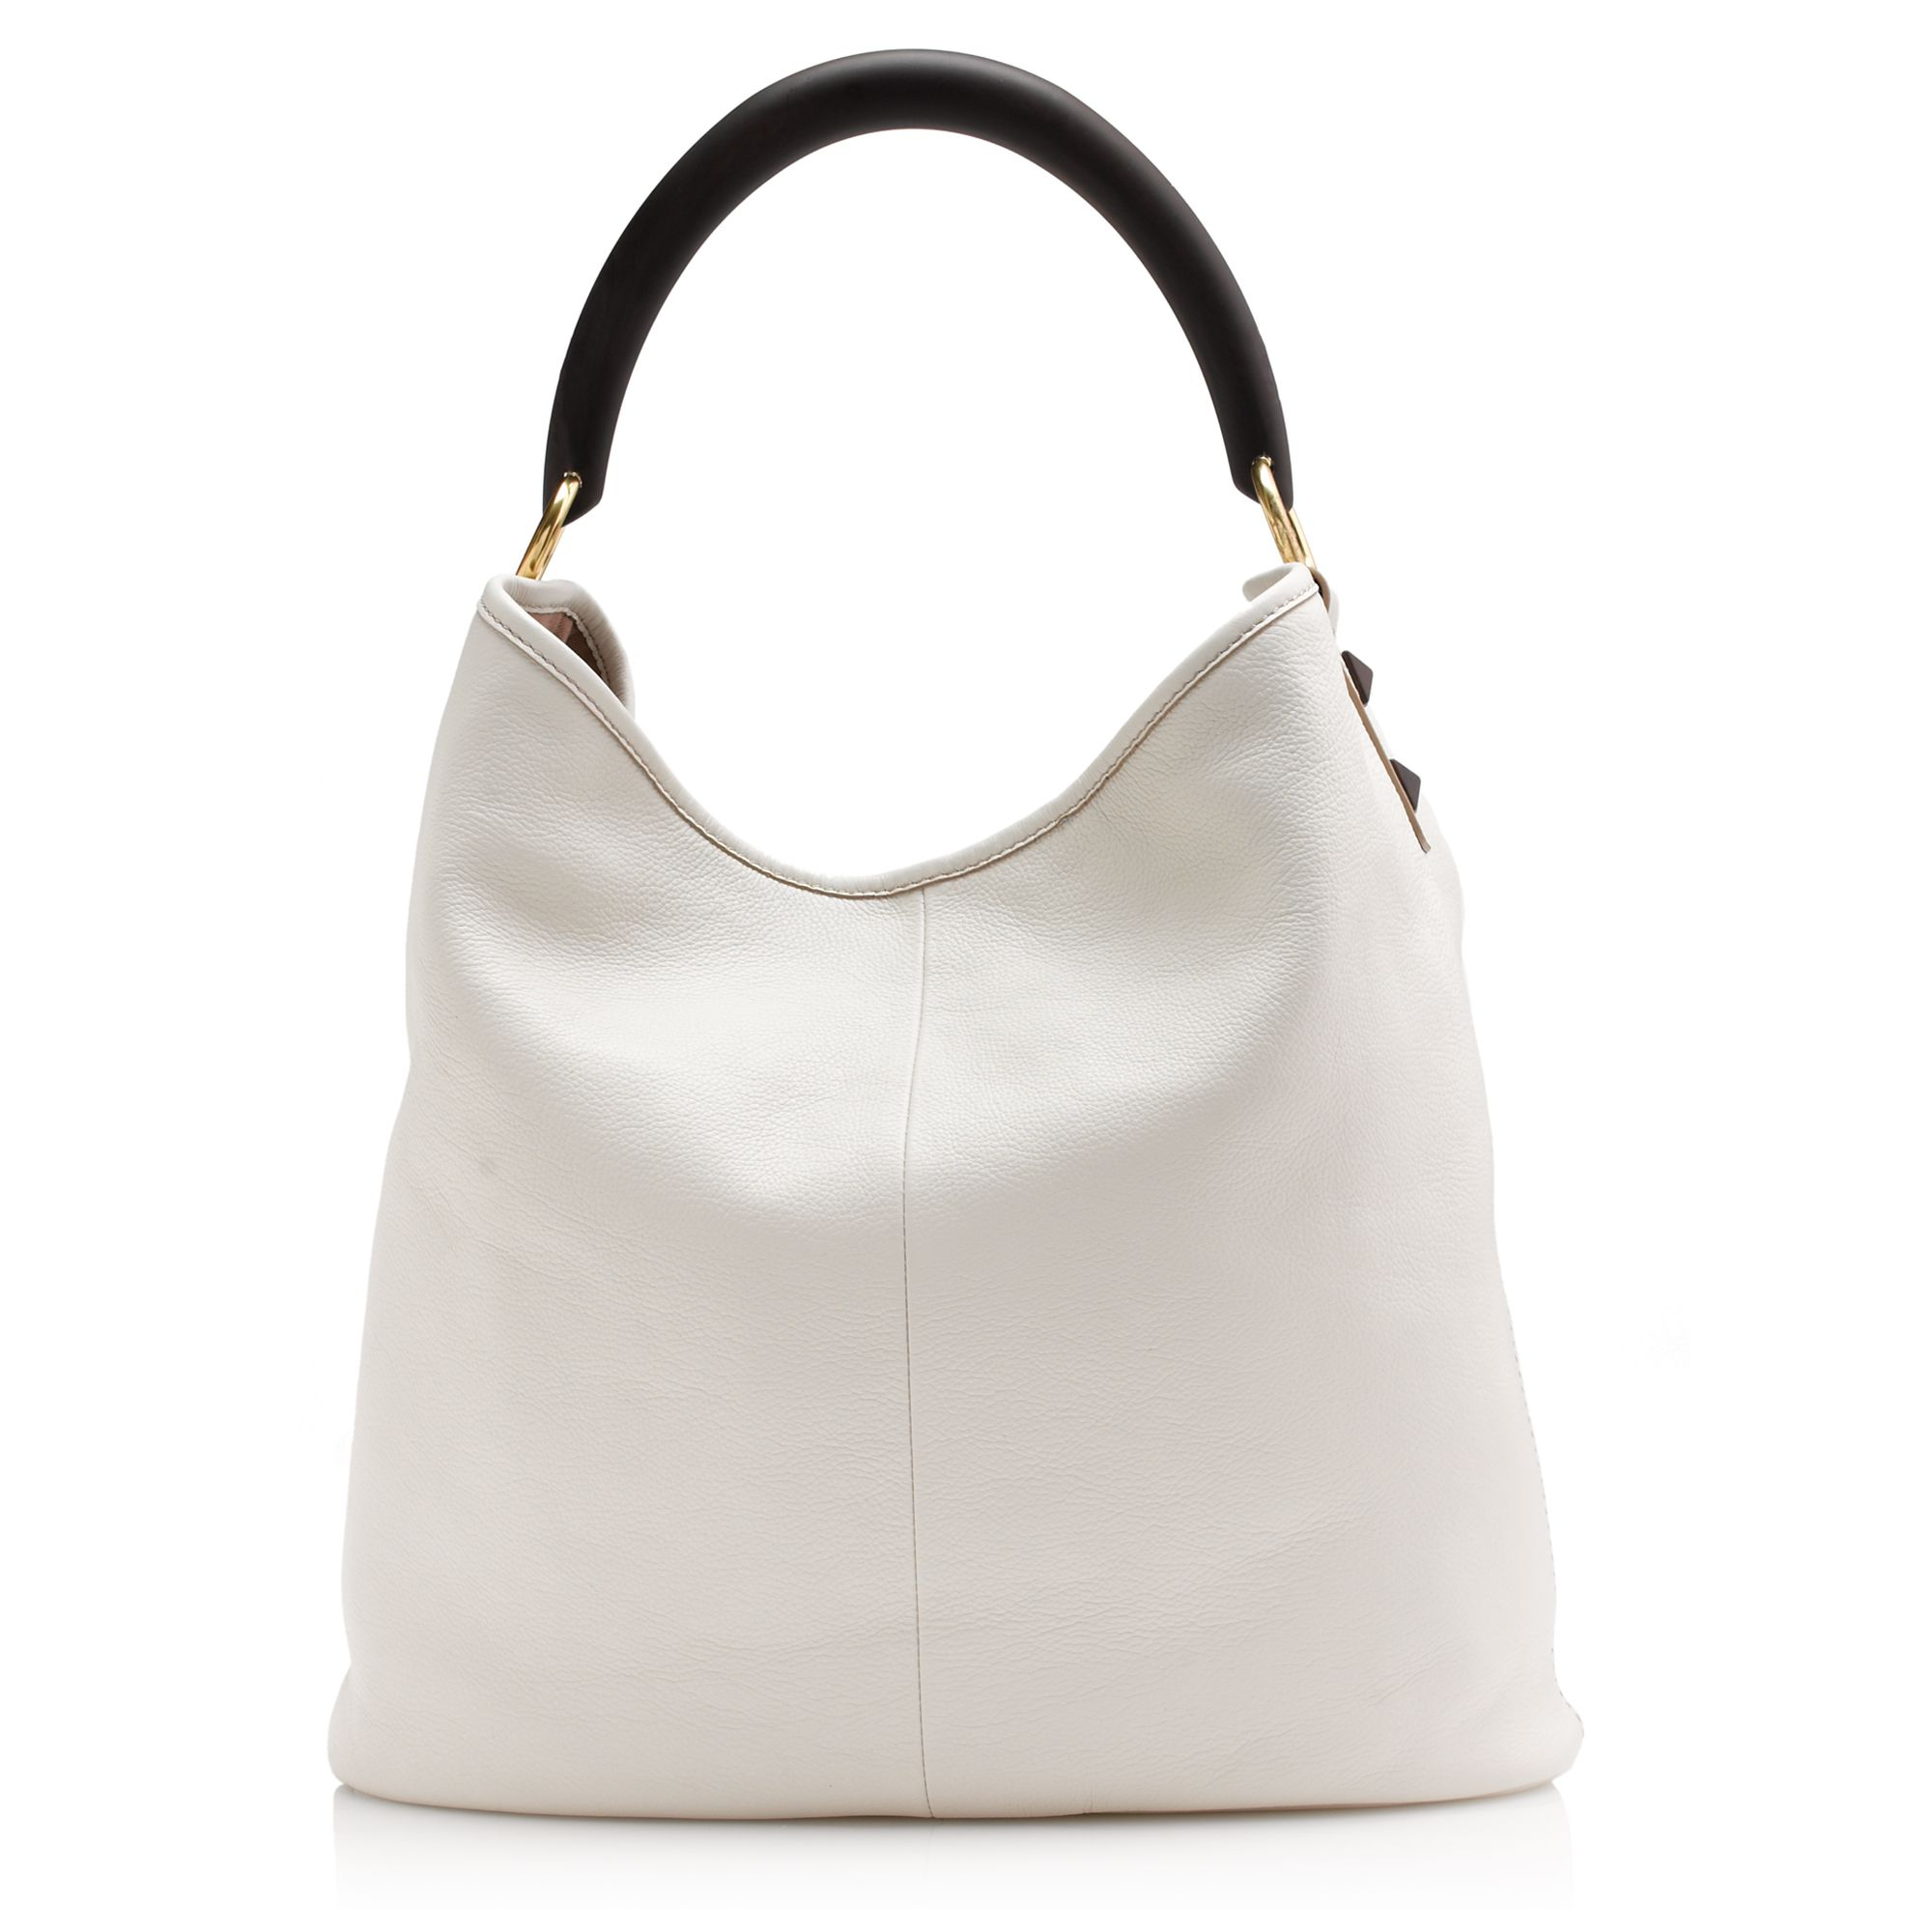 J.crew Horn Hobo in White | Lyst